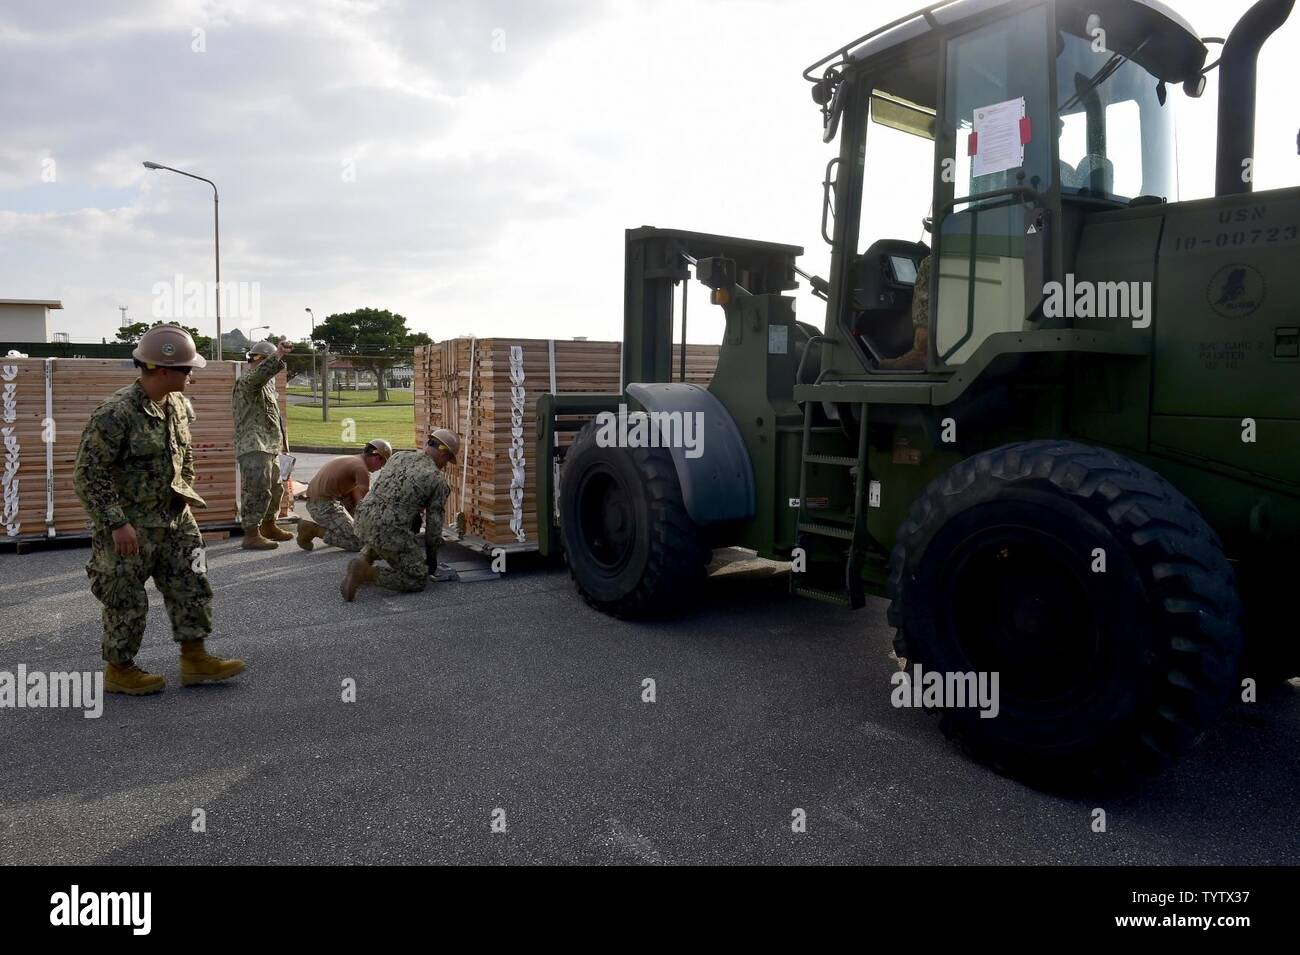 OKINAWA, Japan (Nov. 29, 2016) Petty Officer 2nd Class Bernard Barbuto, a Seabee assigned to Naval Mobile Construction Battalion (NMCB) 5, gives directions to a forklift operator while weighing a pallet on Camp Shields during an embark exercise. The exercise tests the command ability to mobilize within 48 hours to react to different types of types of contingency operations around the world. NMCB 5 is the forward deployed Western Pacific NMCB ready to support Major Combat Operations, Humanitarian Assistance and Disaster Relief operations, and to provide general engineering and civil support to - Stock Image